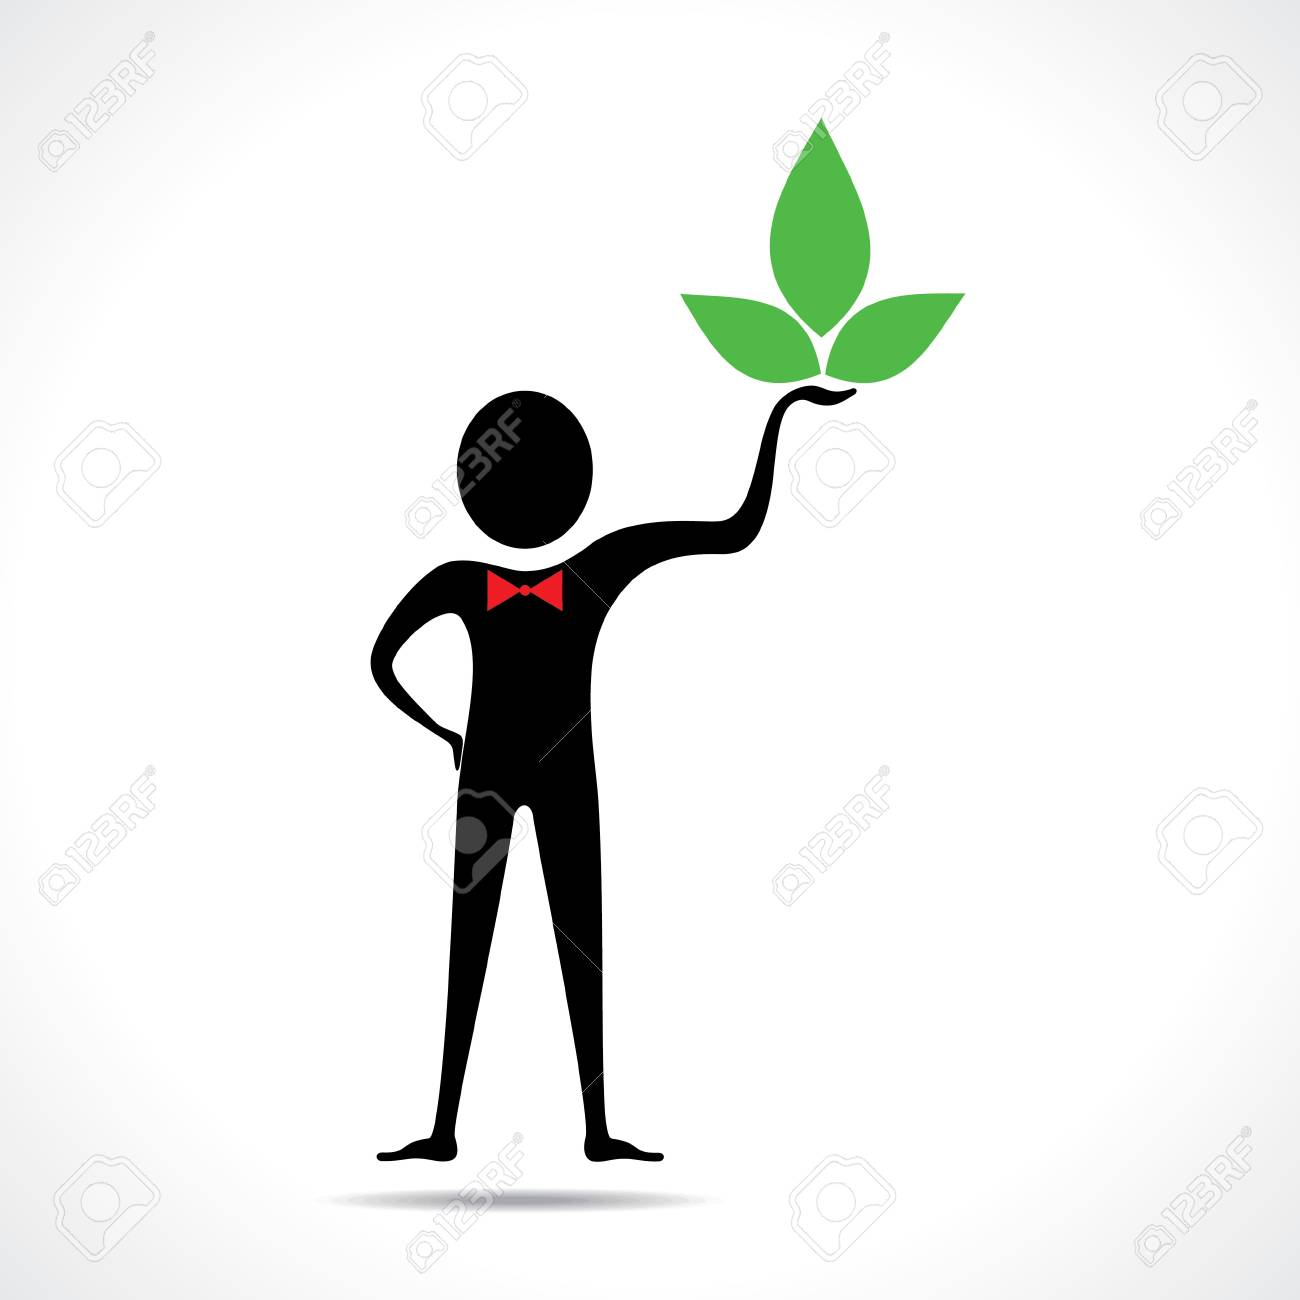 Man holding a leaf icon vector Stock Vector - 20645088